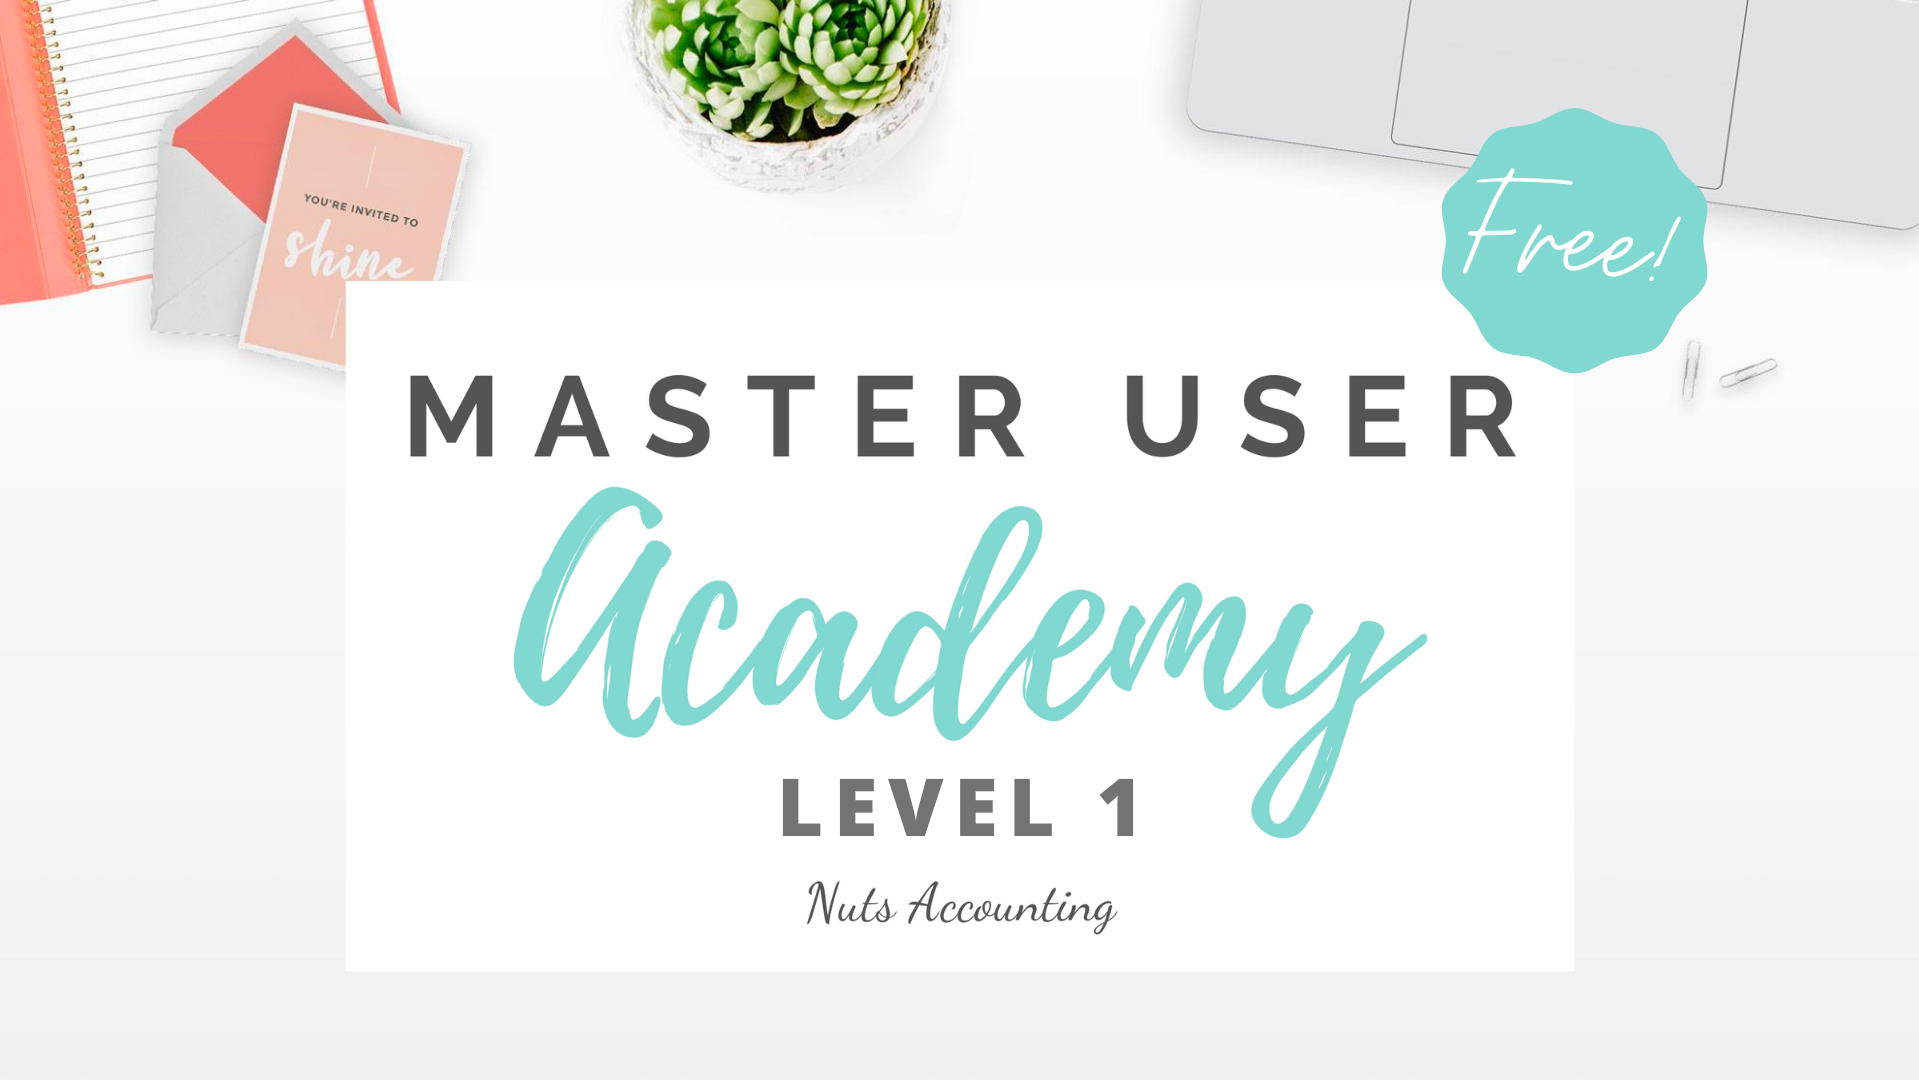 Master User Academy Level 1 Online Course Free